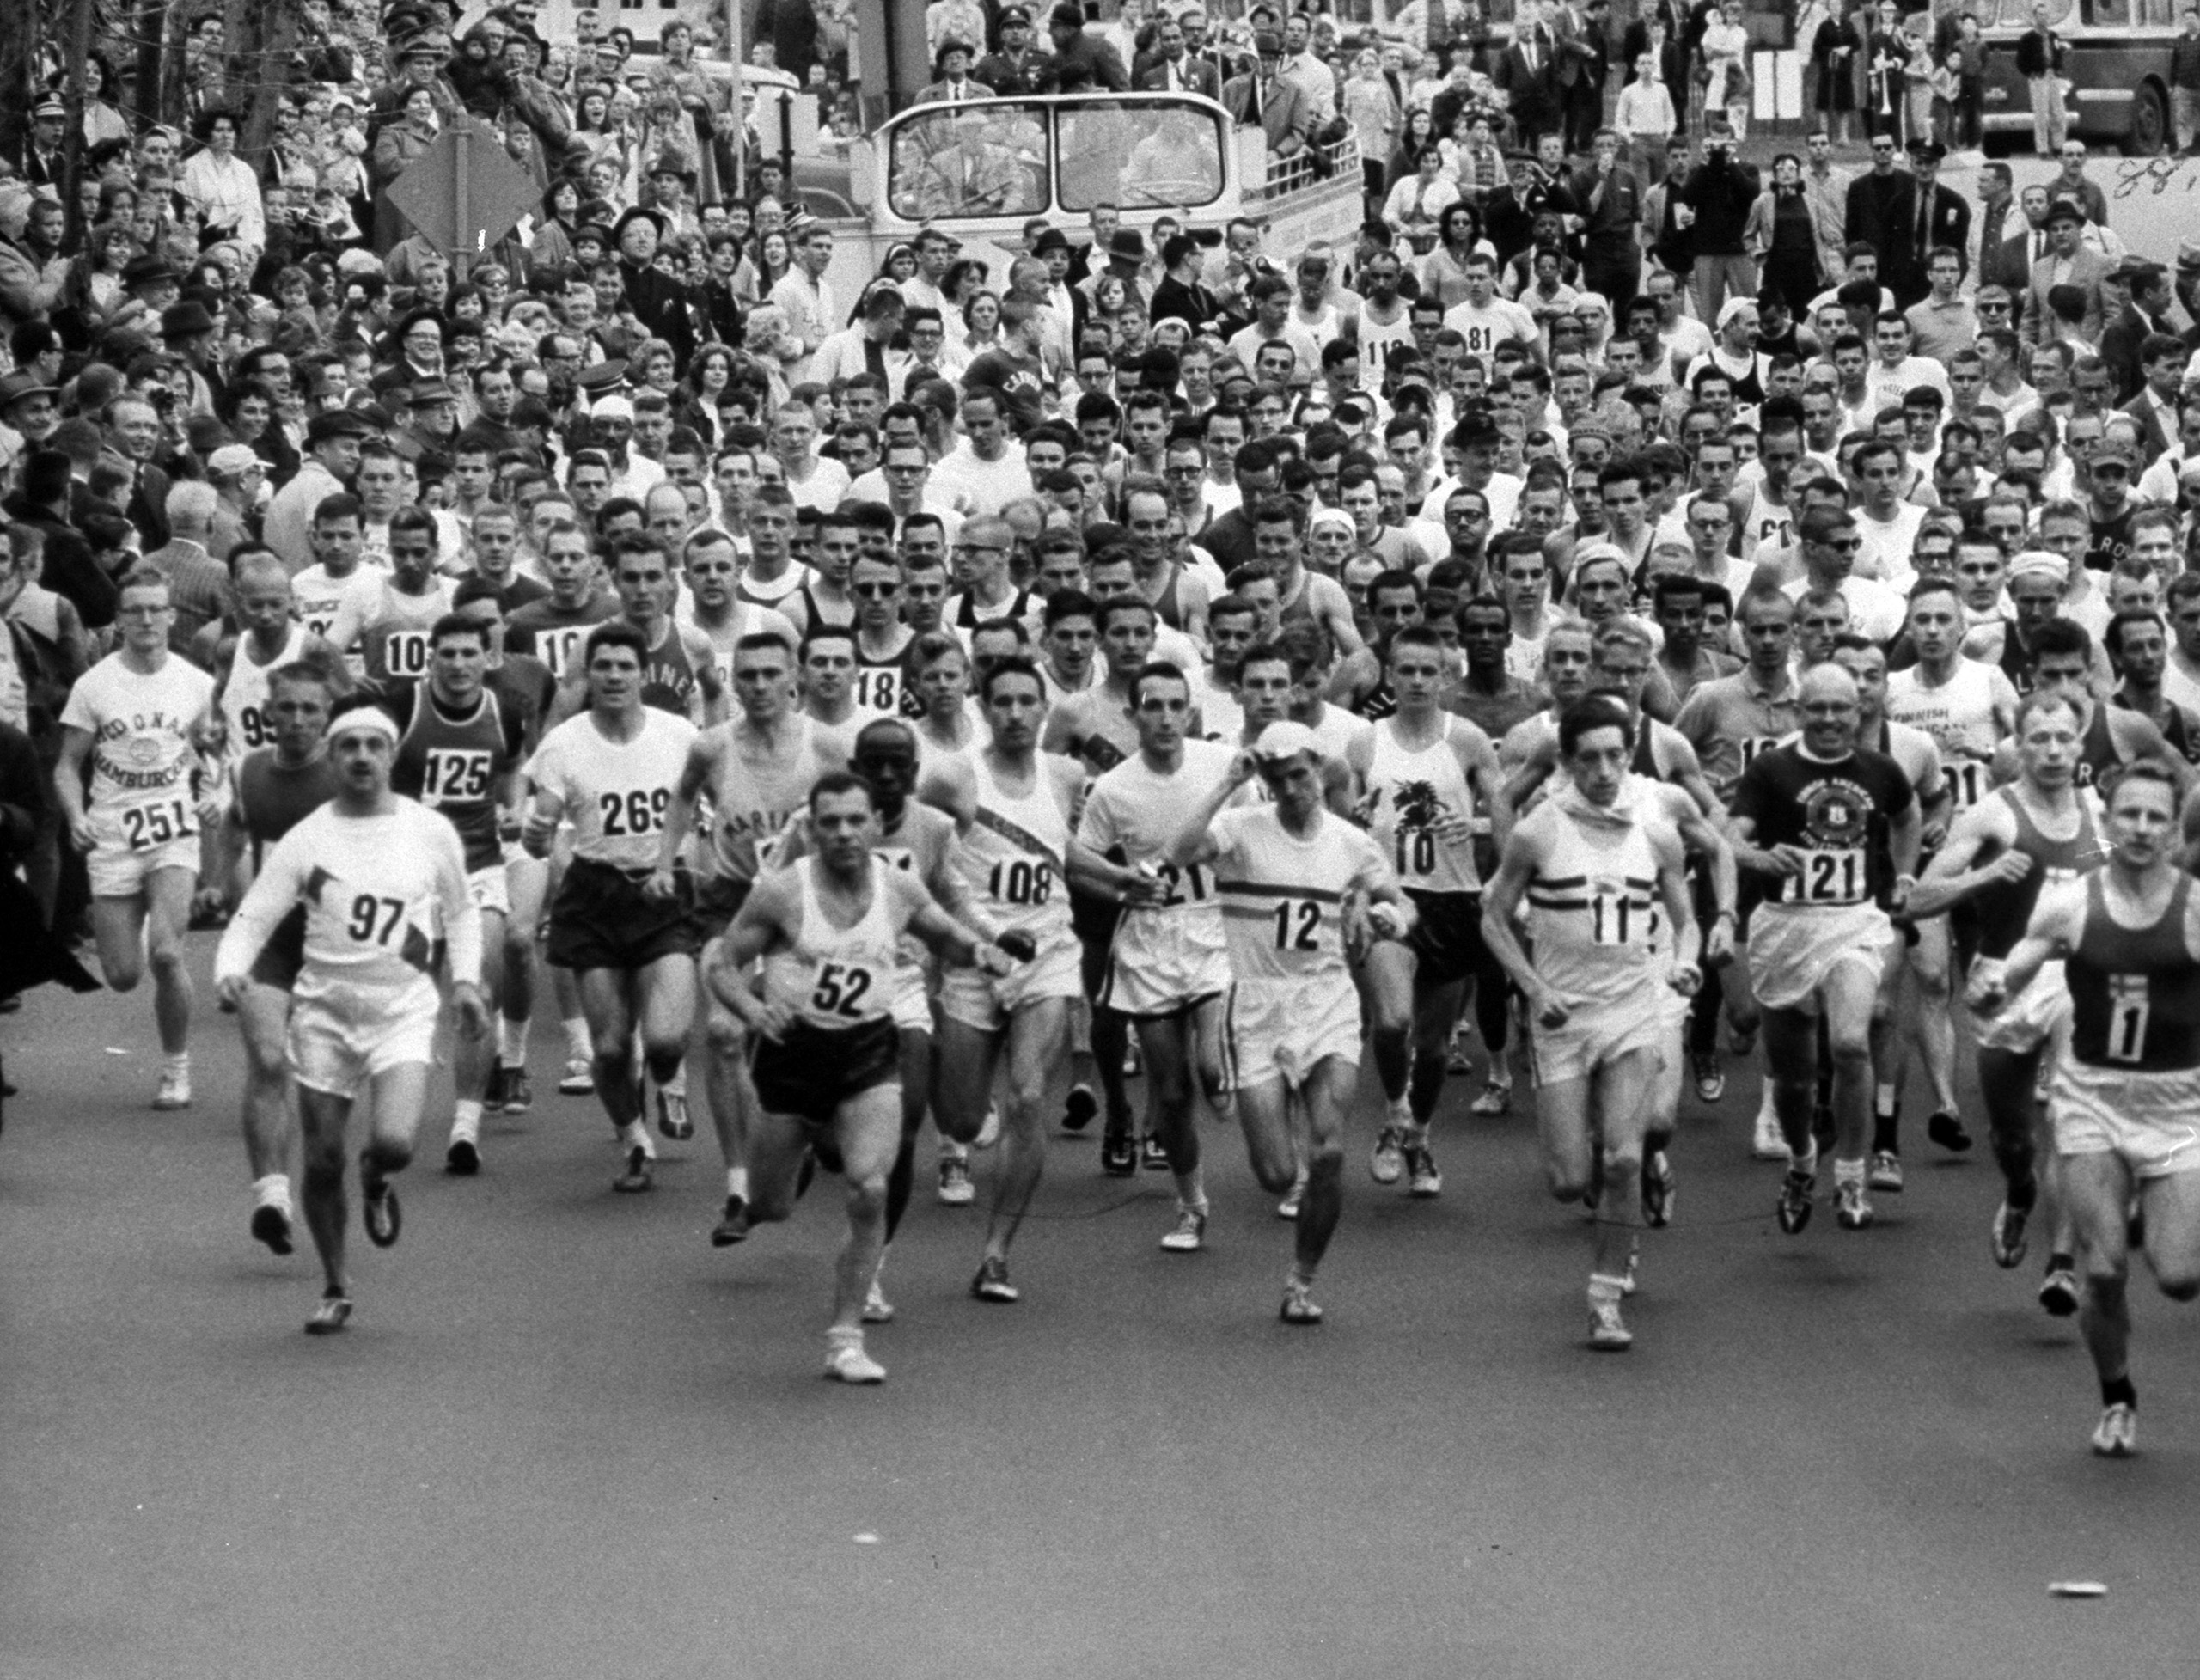 237 runners competing in the annual Boston Marathon crossing the starting line, in 1963.